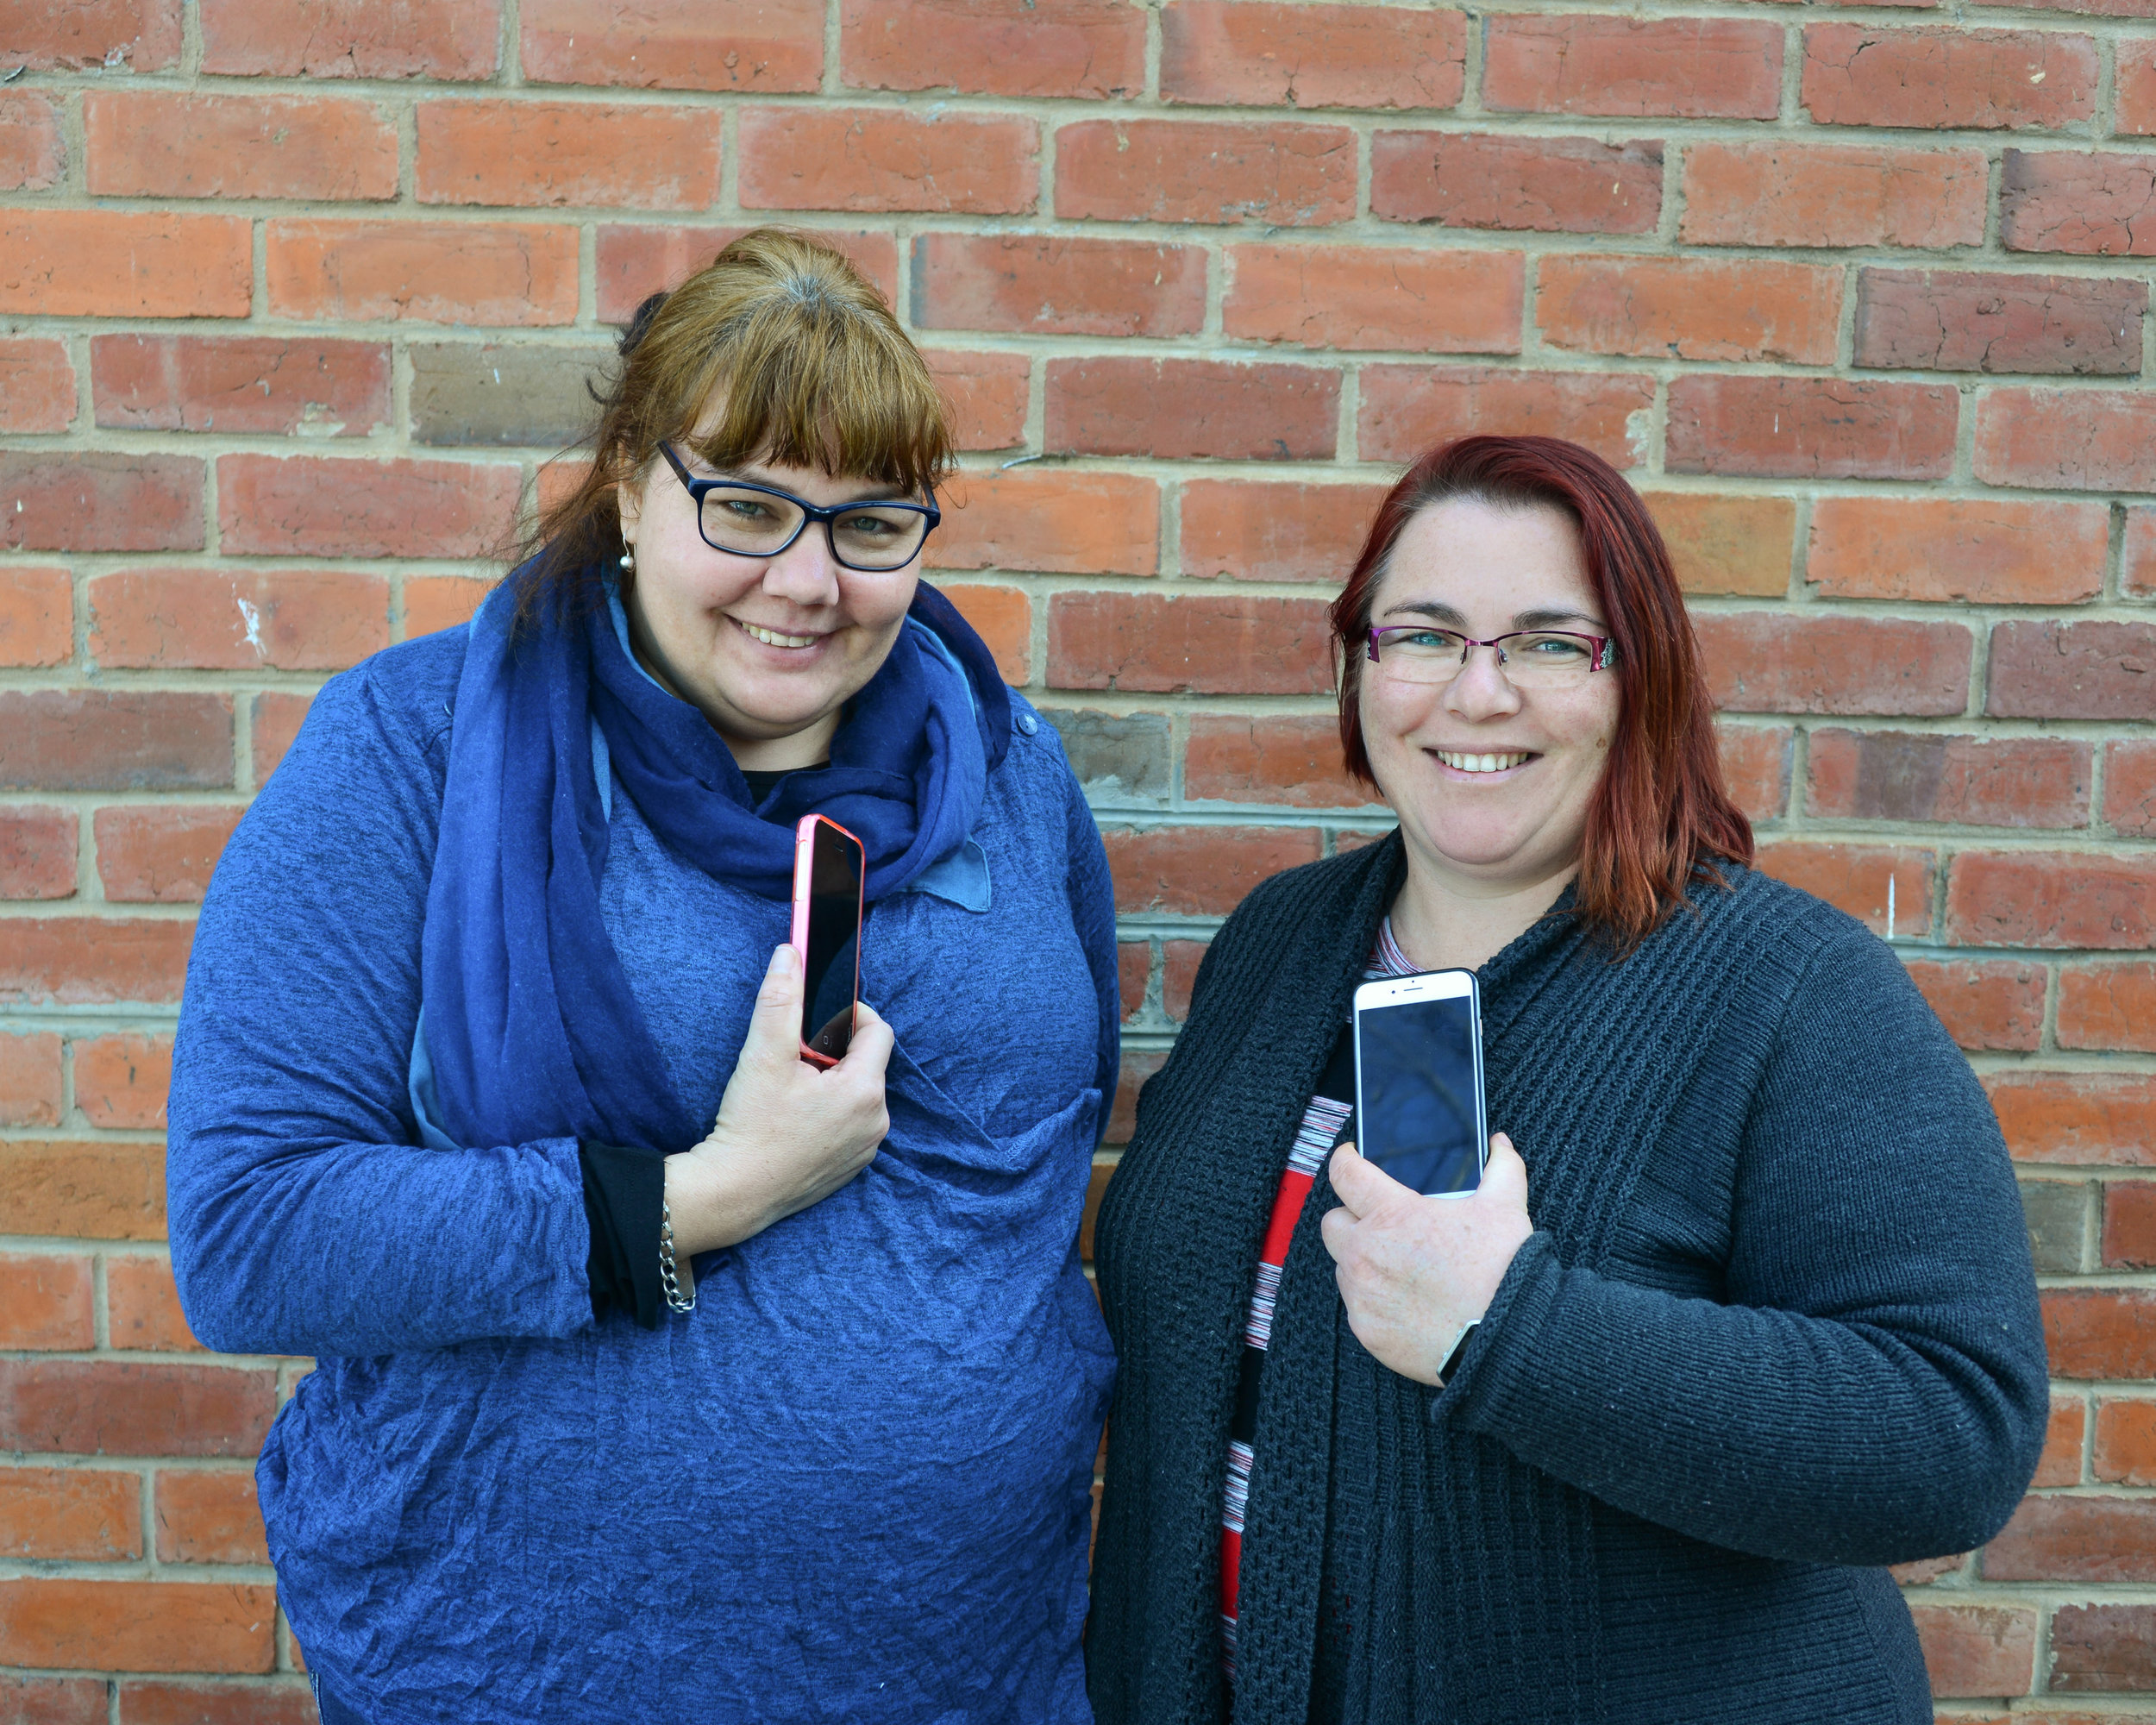 Sarah Parker and Gemma Monk holding their phones, Shepparton, 2016, Source: Museums Victoria, Photographer: Catherine Forge